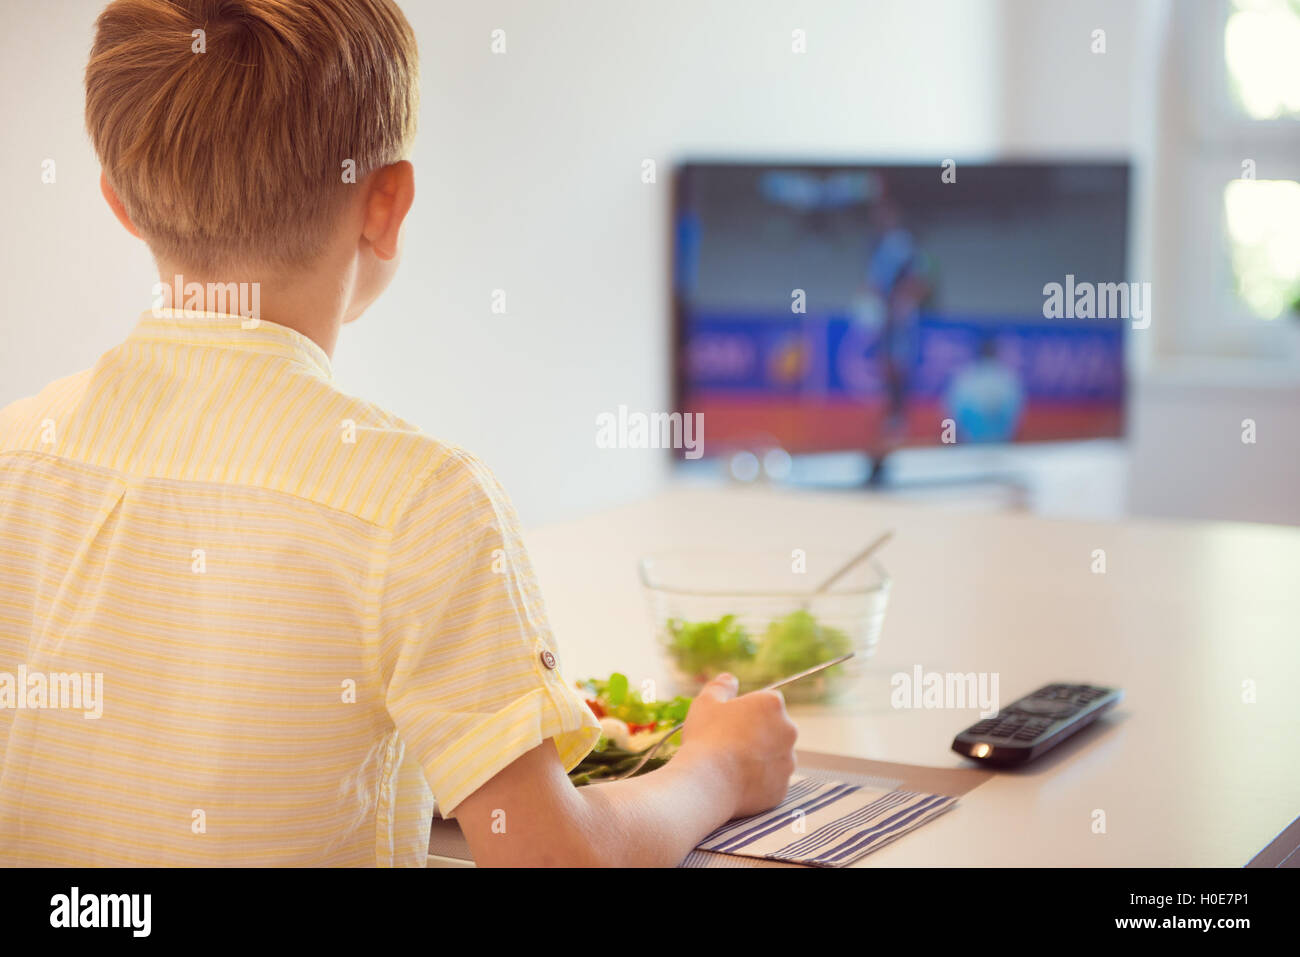 Cute boy child eating at the table in kitchen and watching football - Stock Image